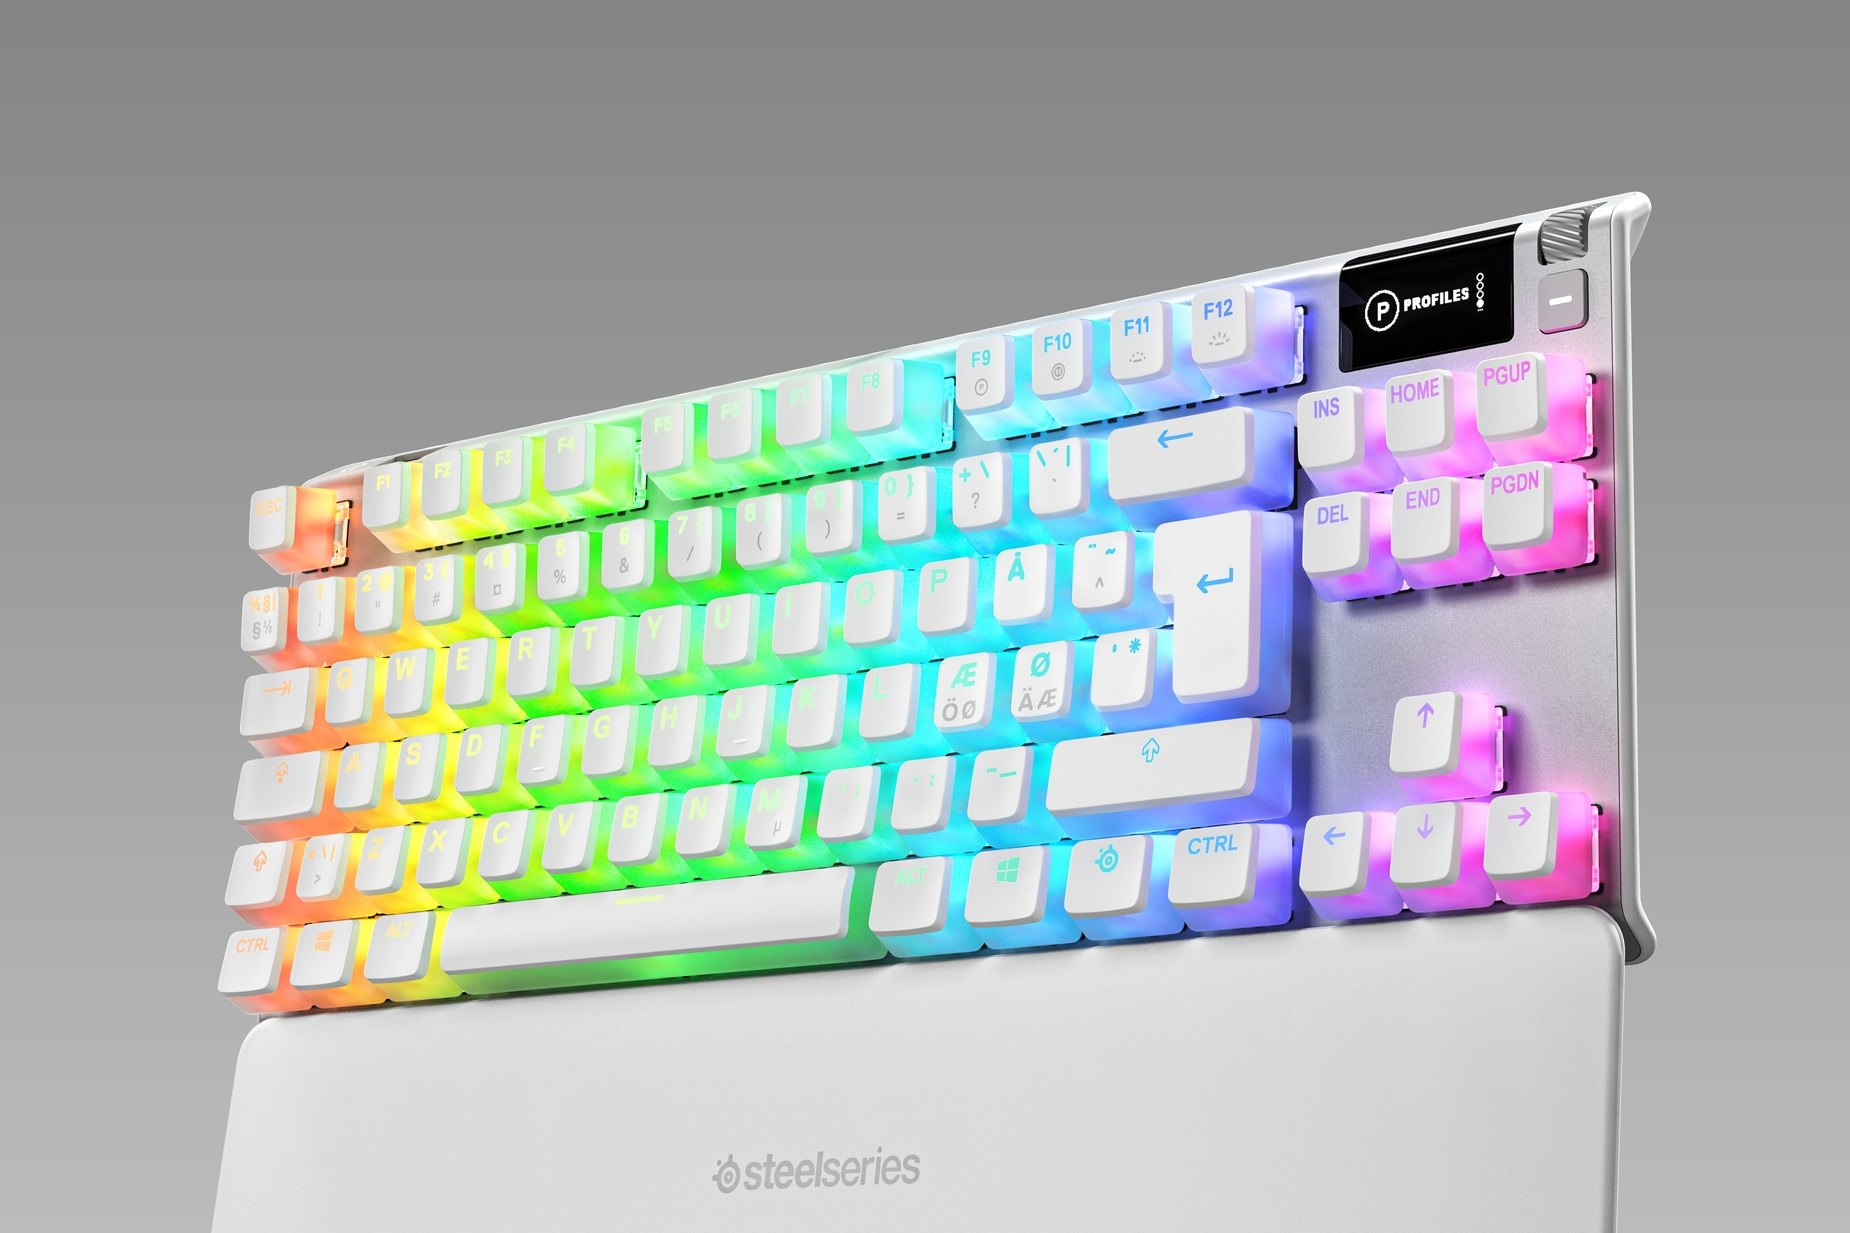 Diagonal view of the Nordic version of the Apex 7 TKL, ghost edition.